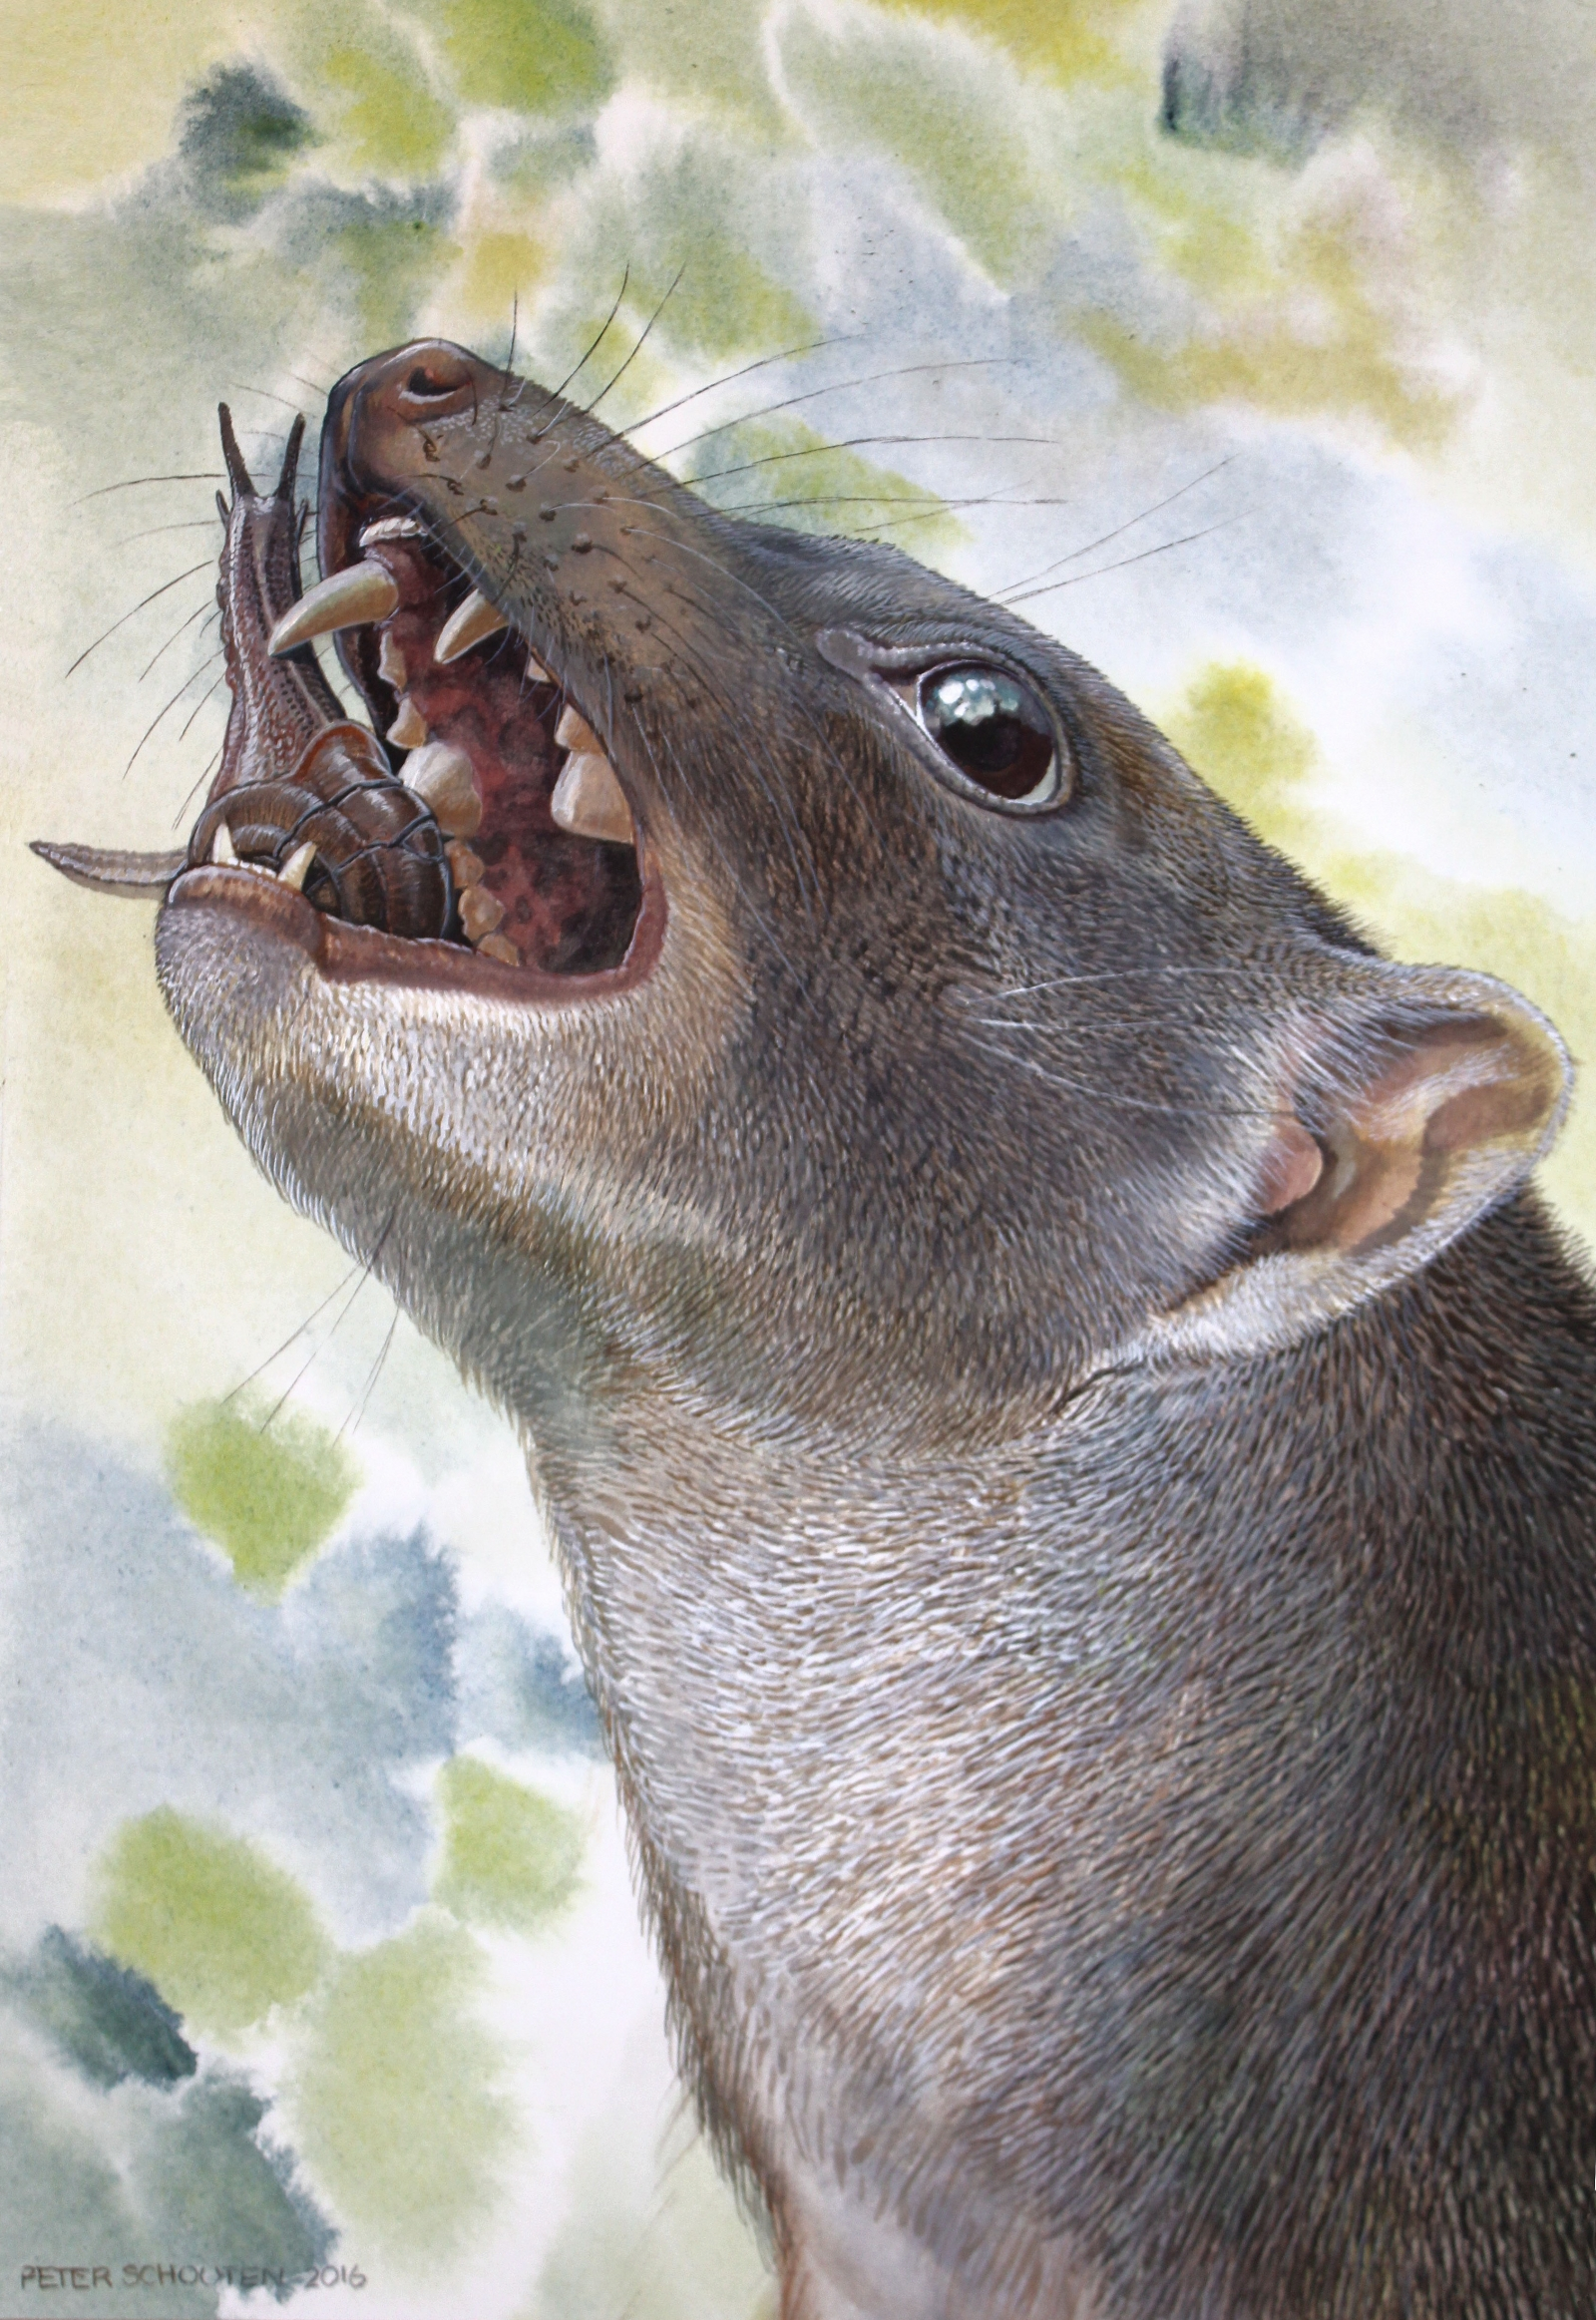 snail-eating marsupial